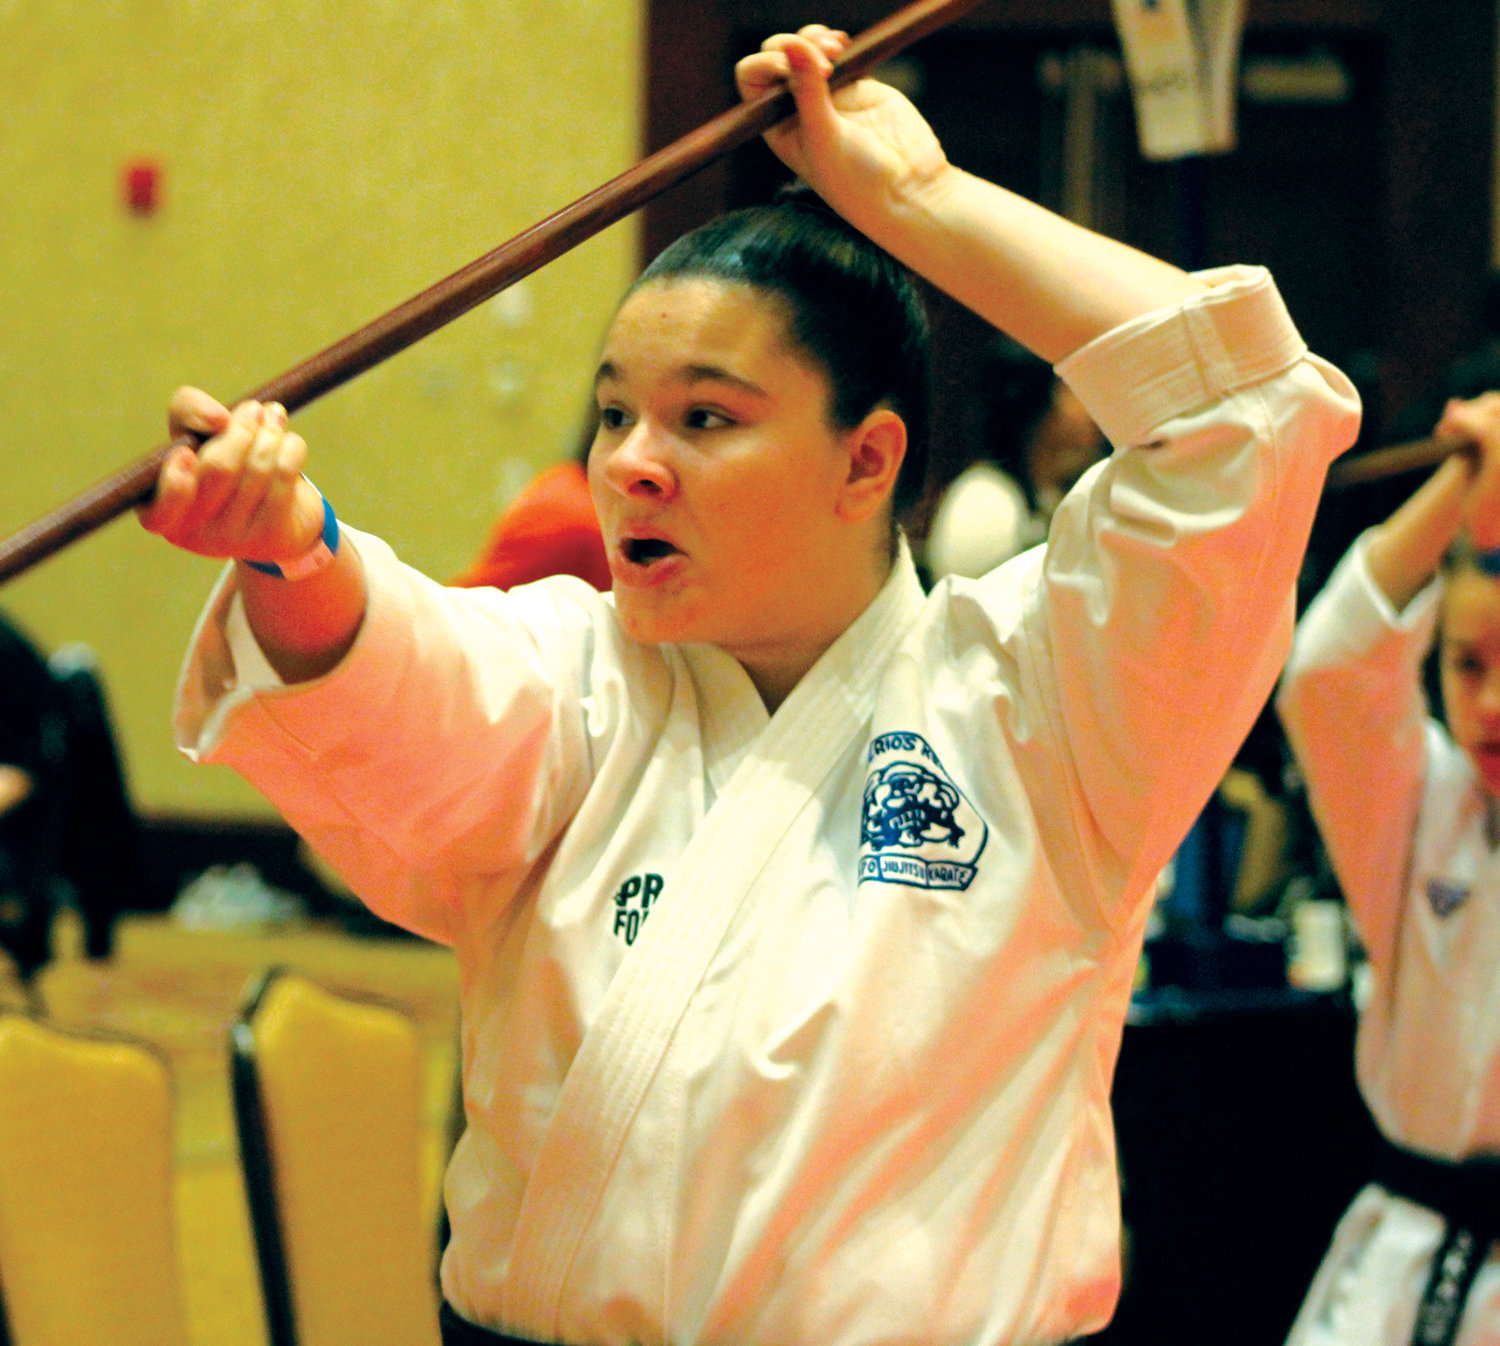 BIG STAGE: The Don Rodrigues Karate Academy hosted its 39th annual Ocean State Grand Nationals at the Crowne Plaza in Warwick over the weekend, hosting some of the top talent in karate spanning across over 30 US states and seven different countries. Here are some photos of the action.